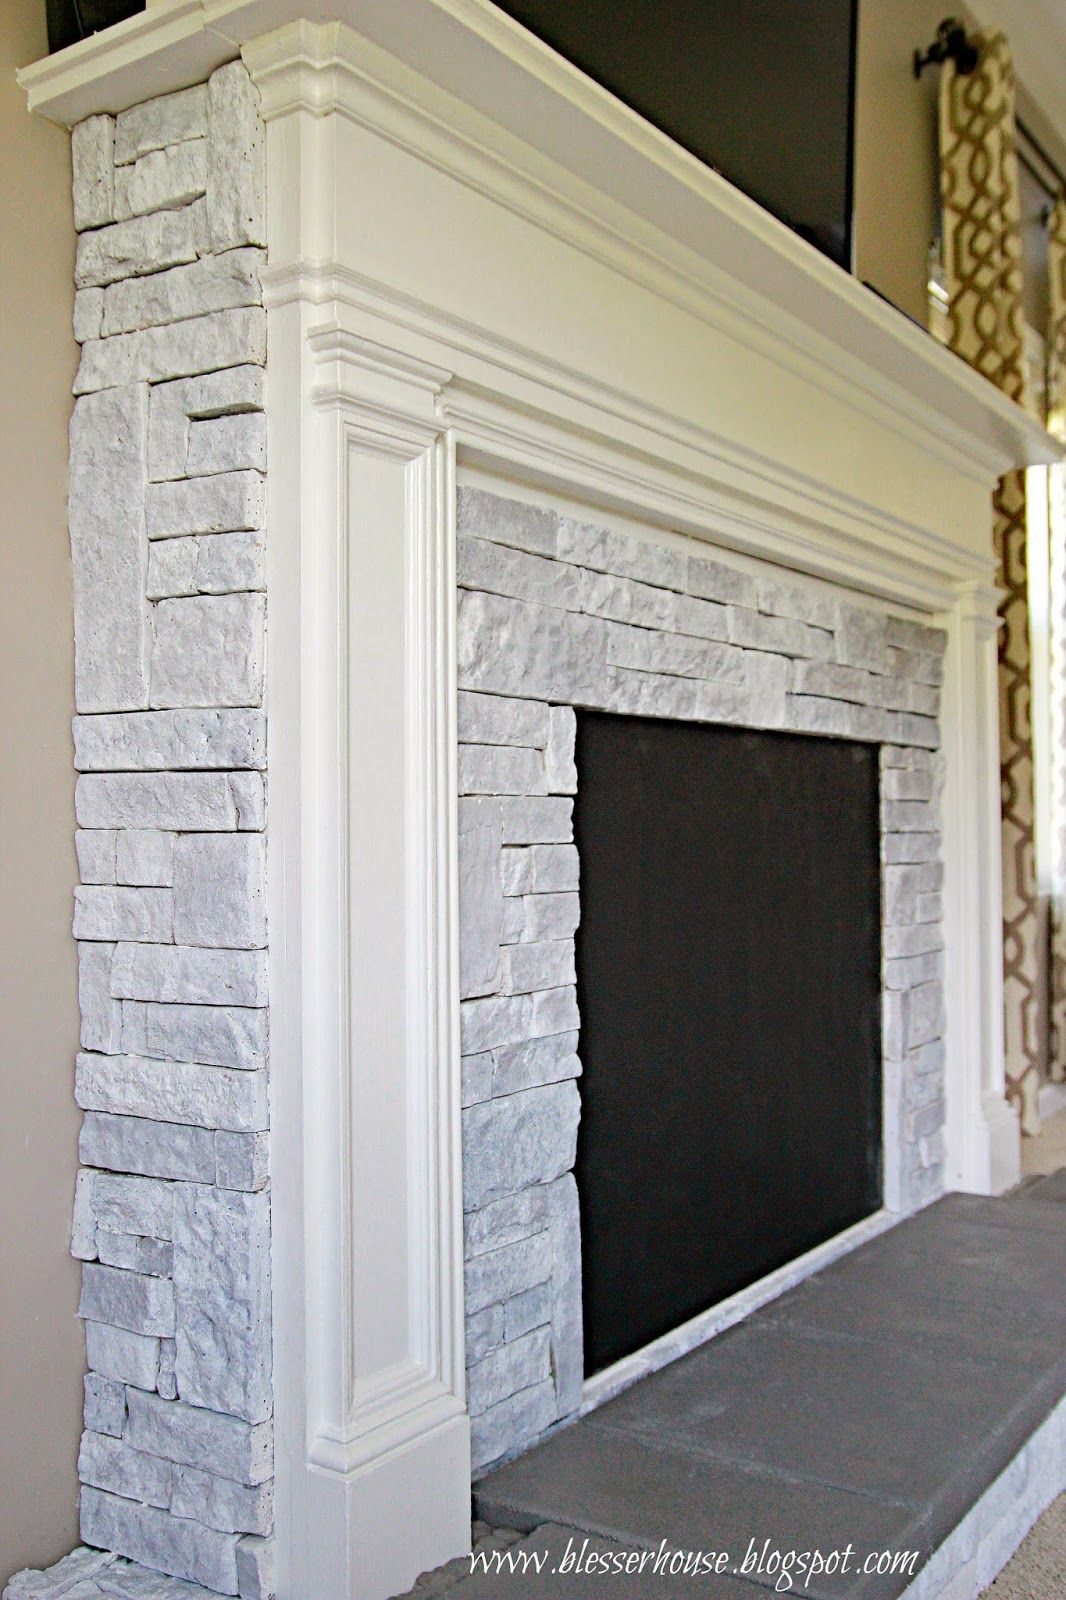 Diy faux fireplace entertainment center part diy faux fireplace